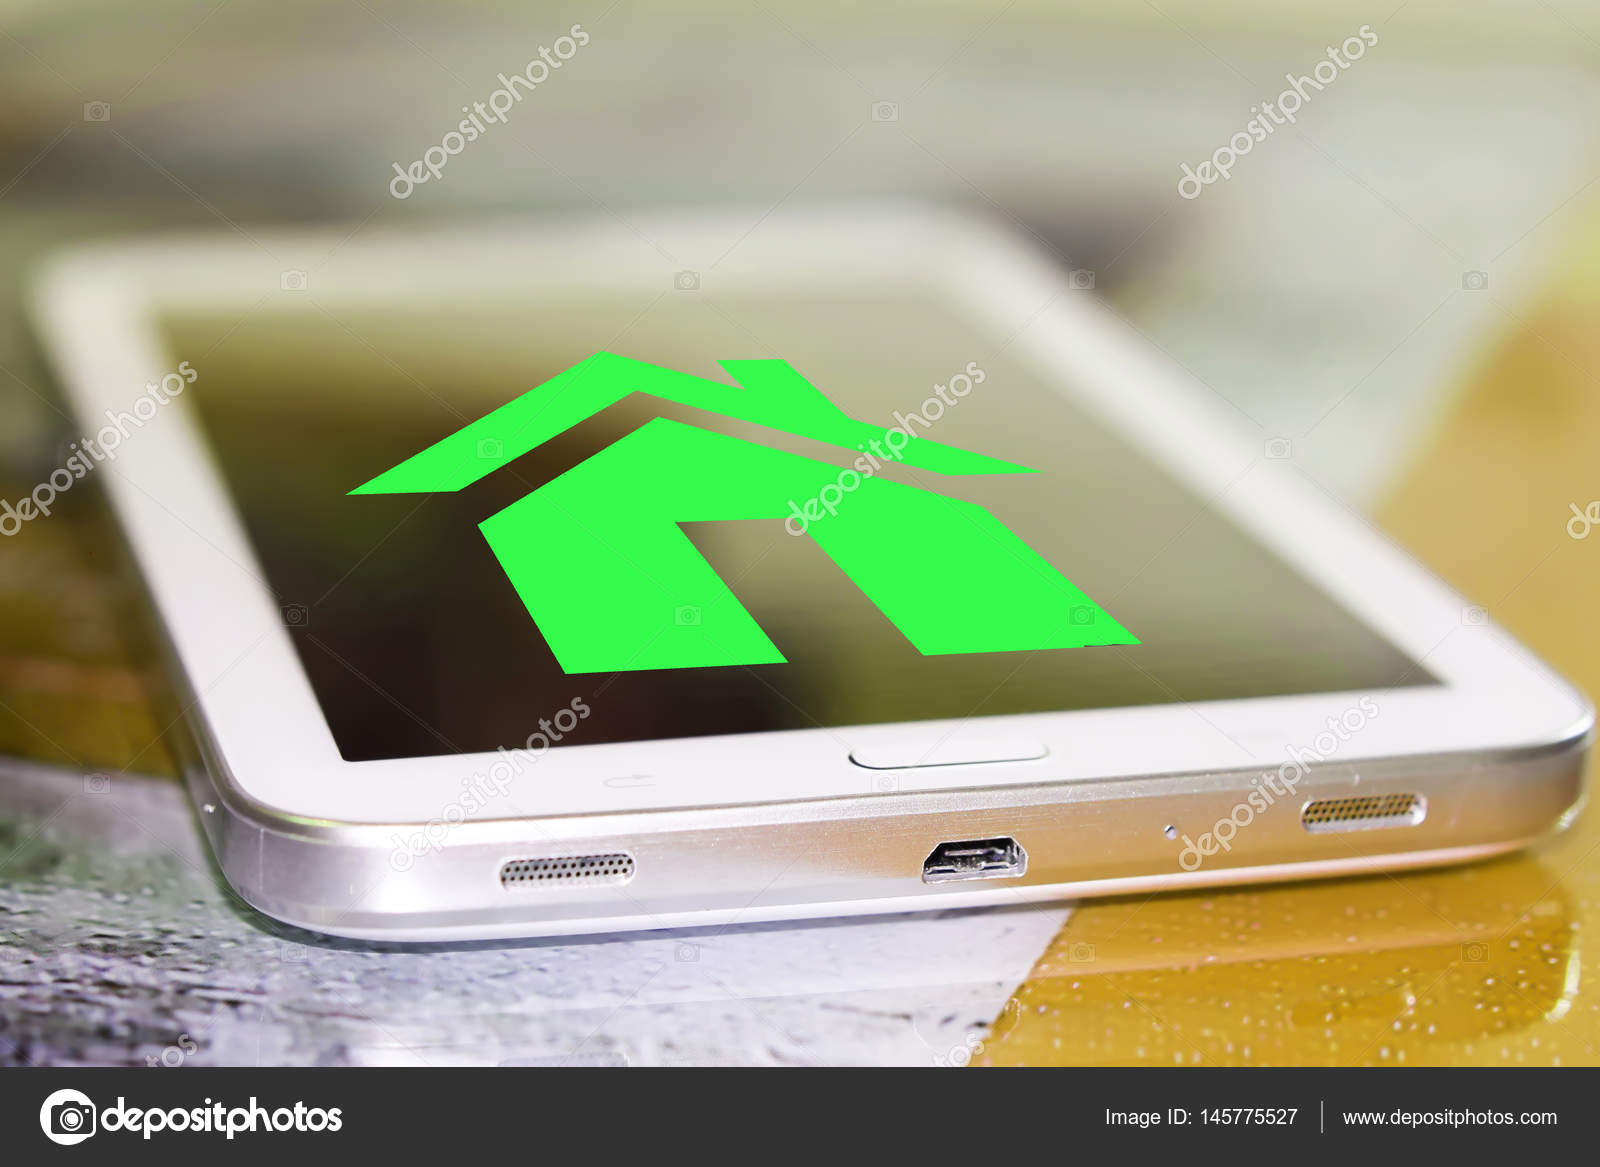 Real Estate Symbol On The Cell Phone Screen Stock Photo